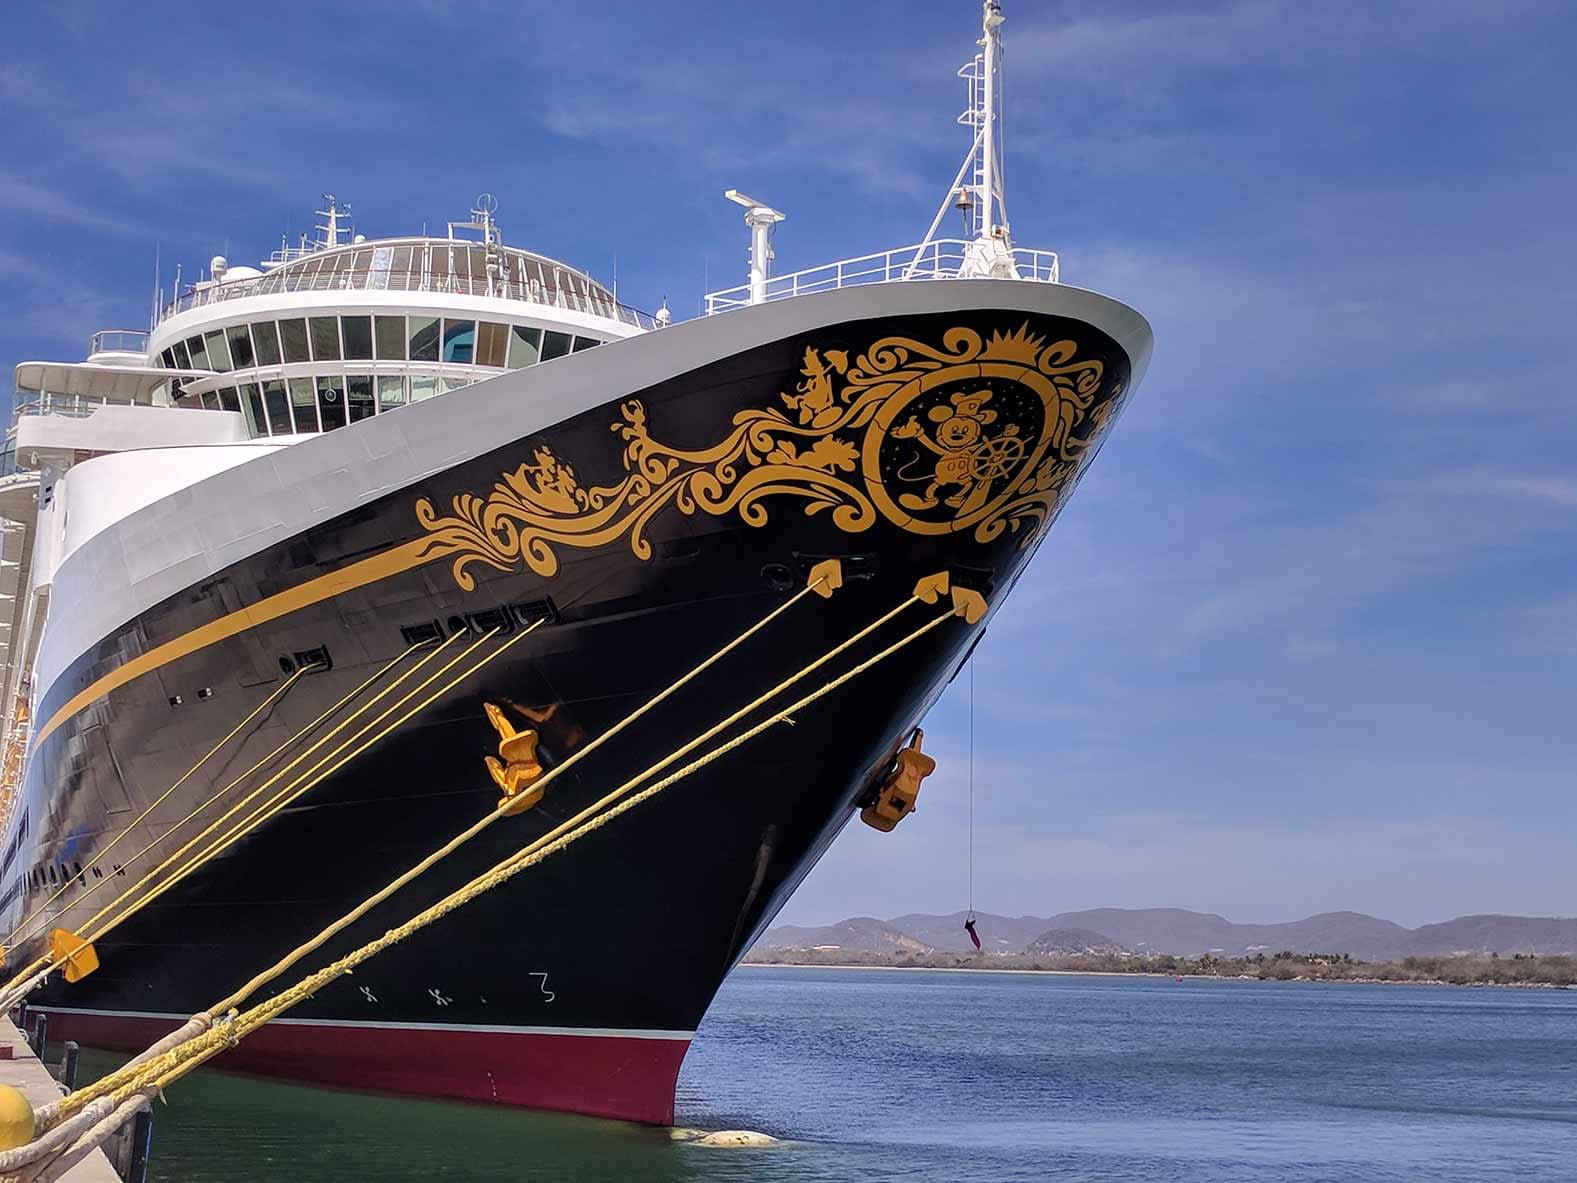 The bow of the Disney Wonder, one of Disney Cruise Lines ships.